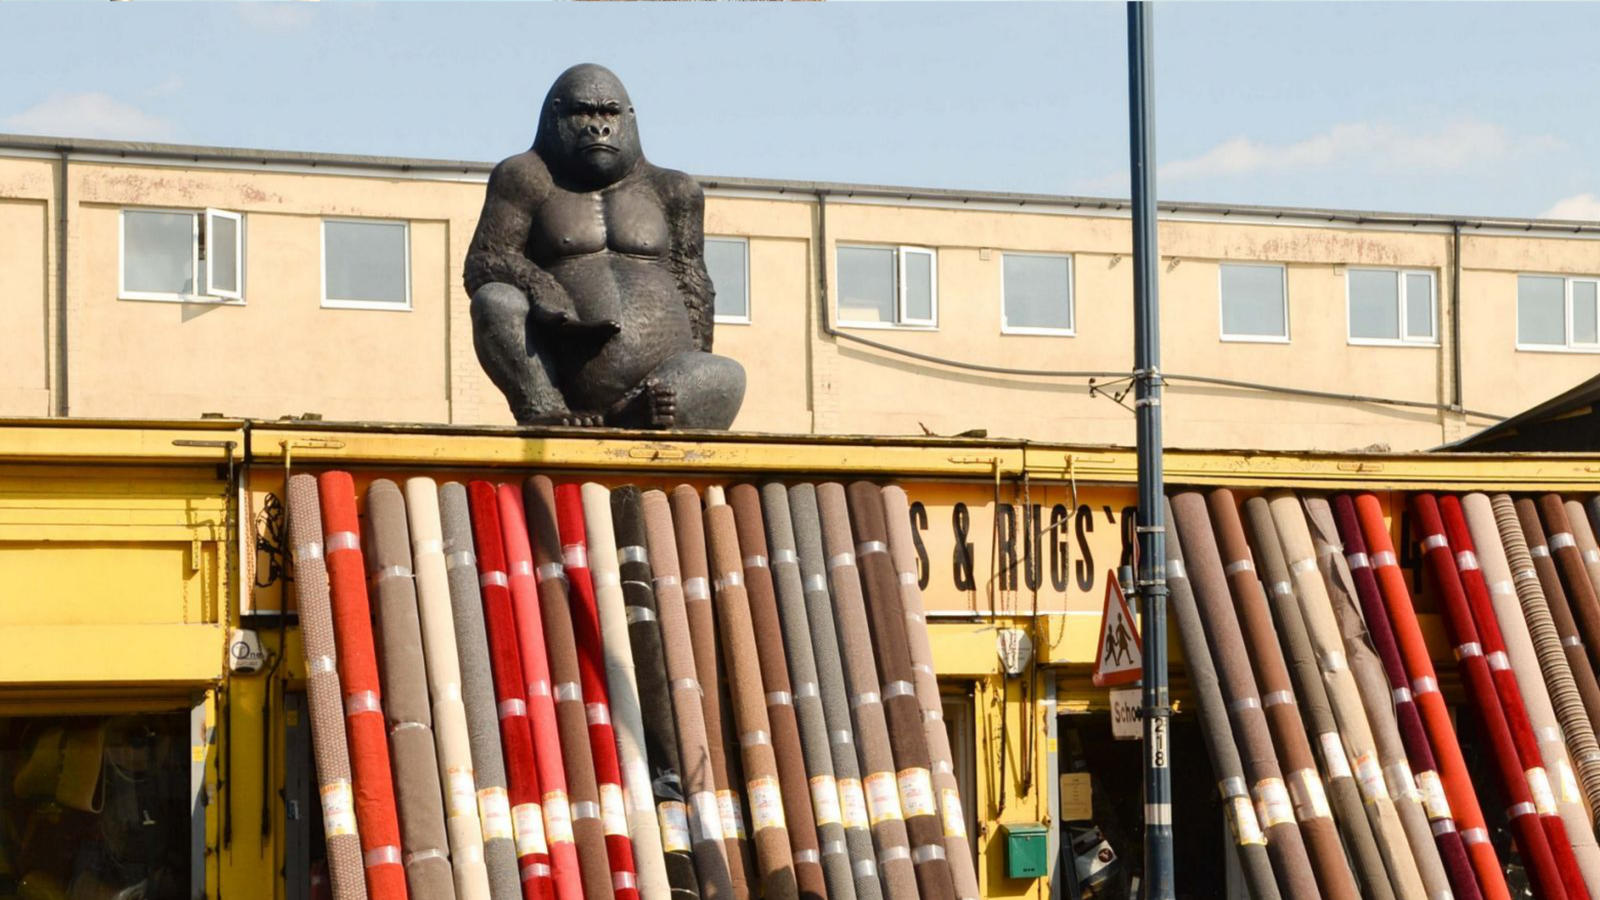 A big gorilla on top of a carpet shop